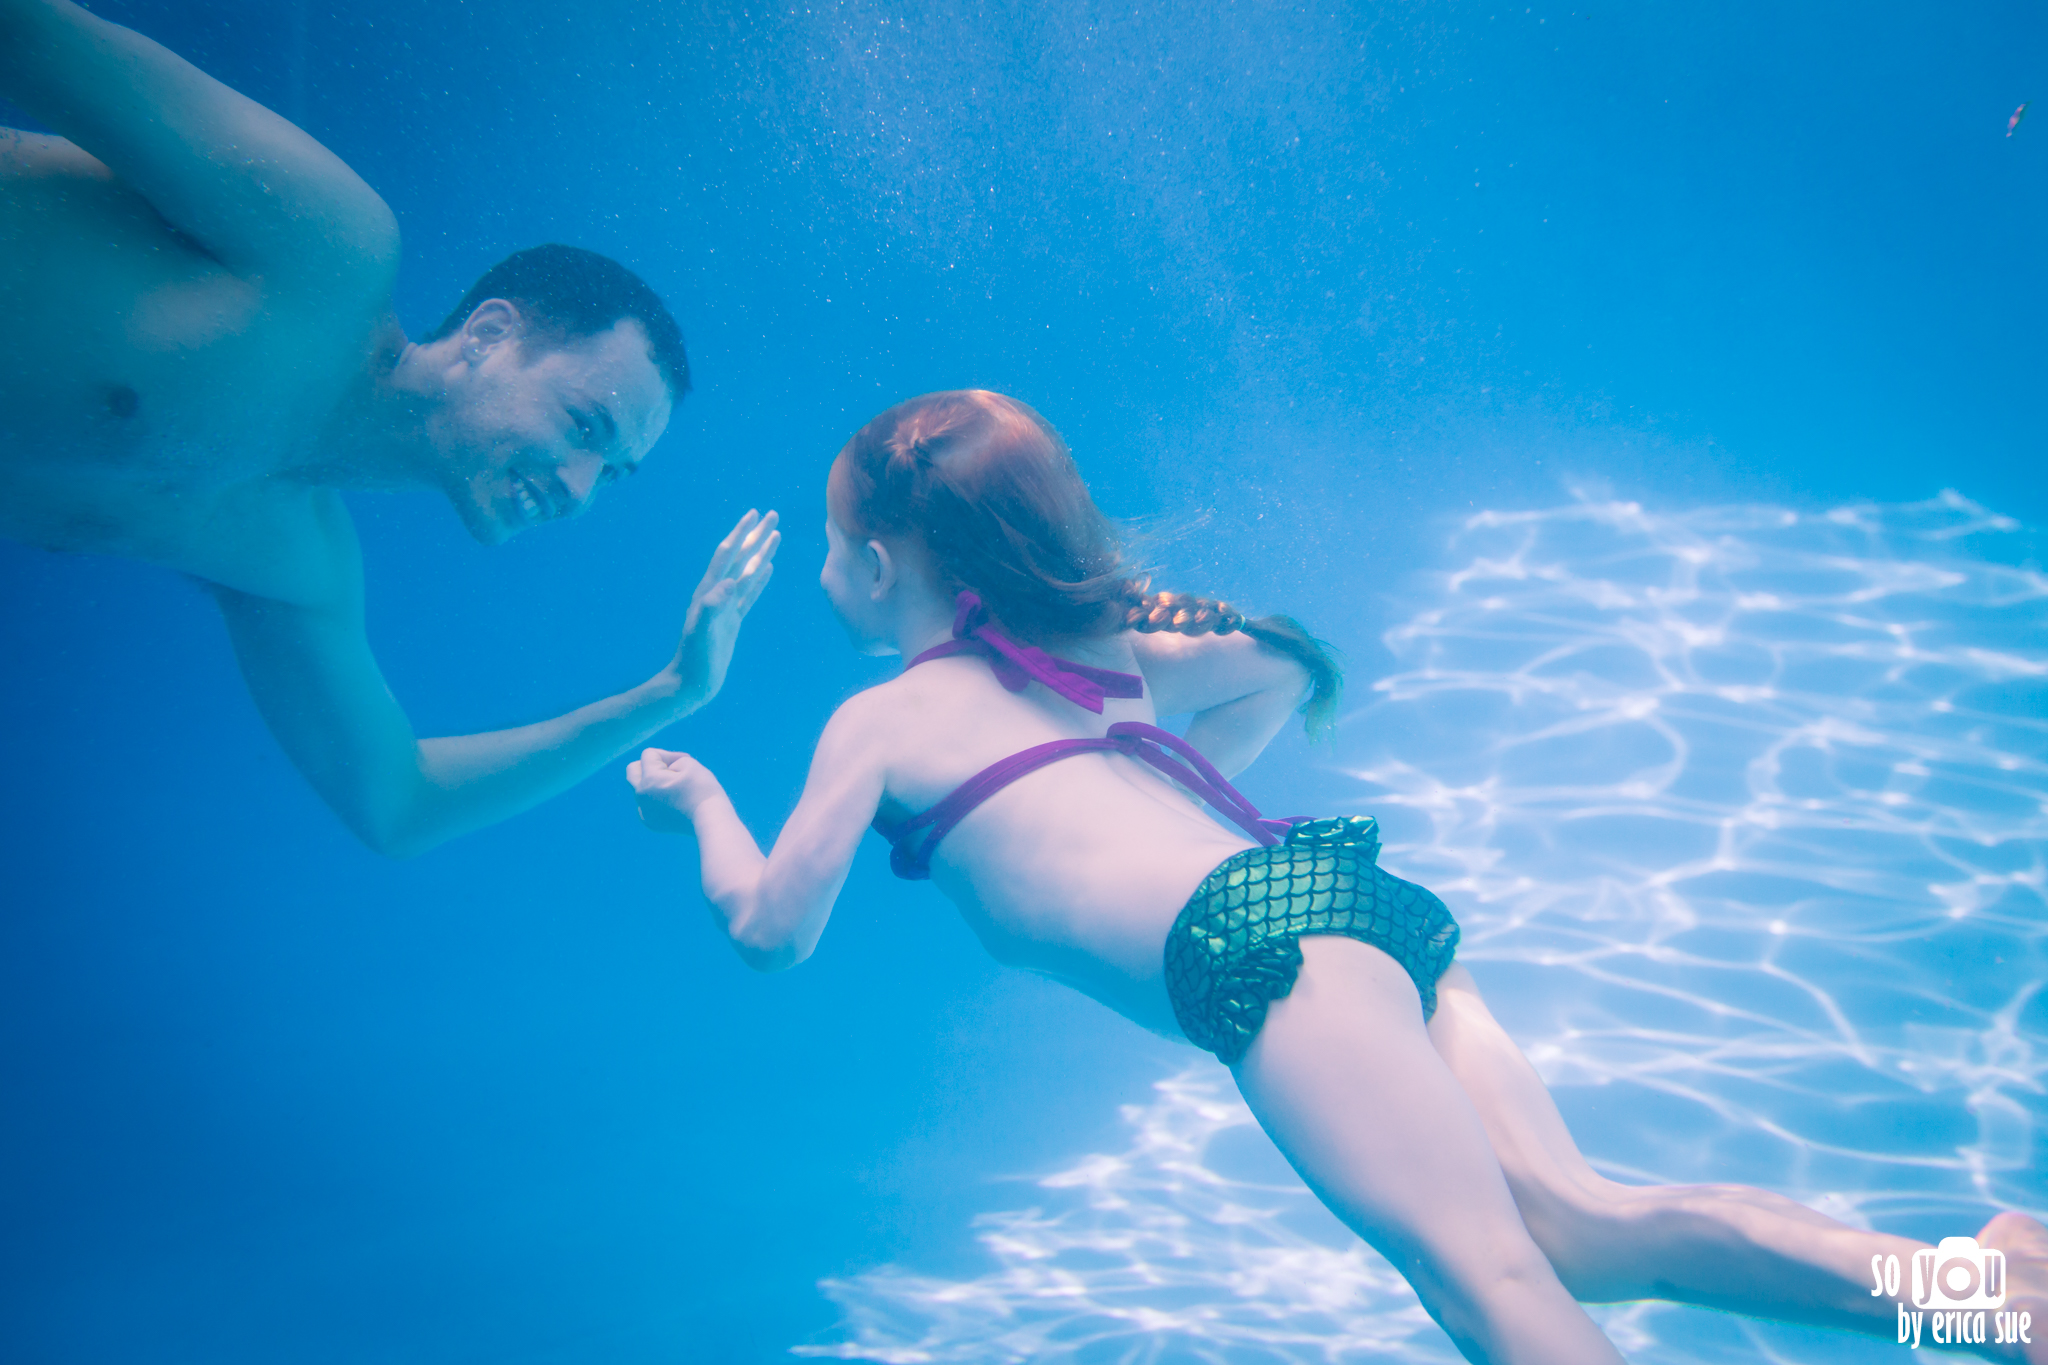 underwater-swim-family-photography-ft-lauderdale-so-you-by-erica-sue-1924.jpg